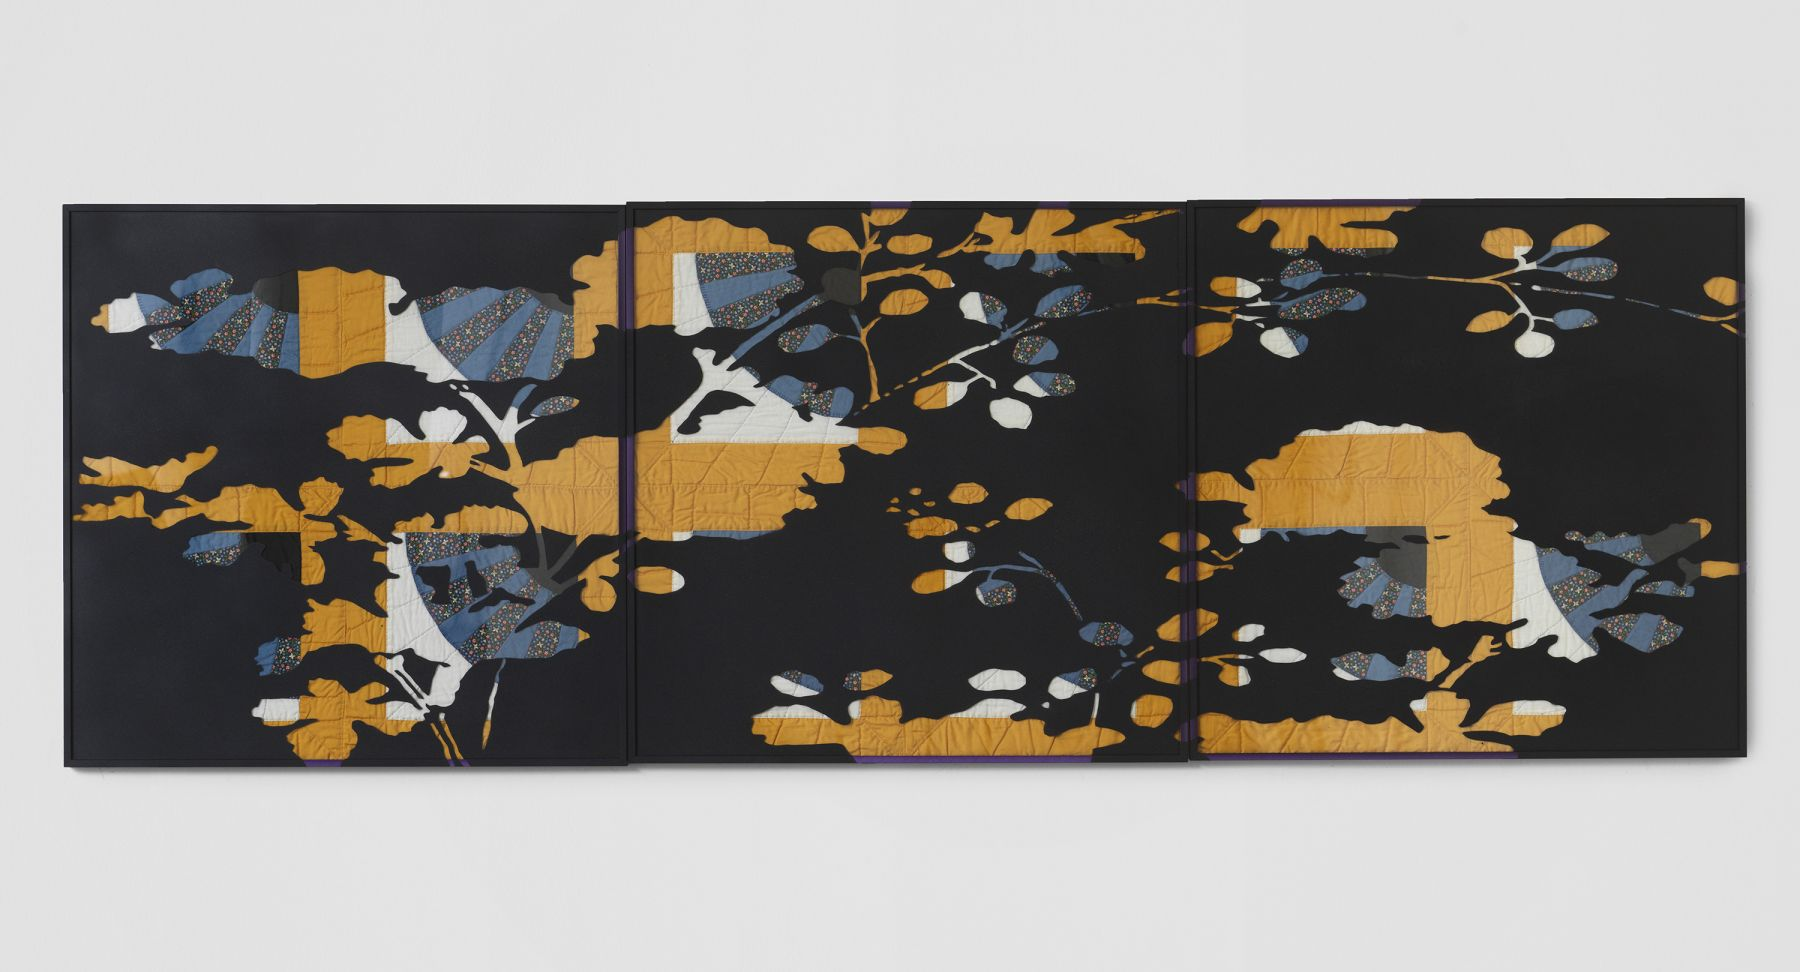 a contemporary work of textile or fiber art by Sanford Biggers